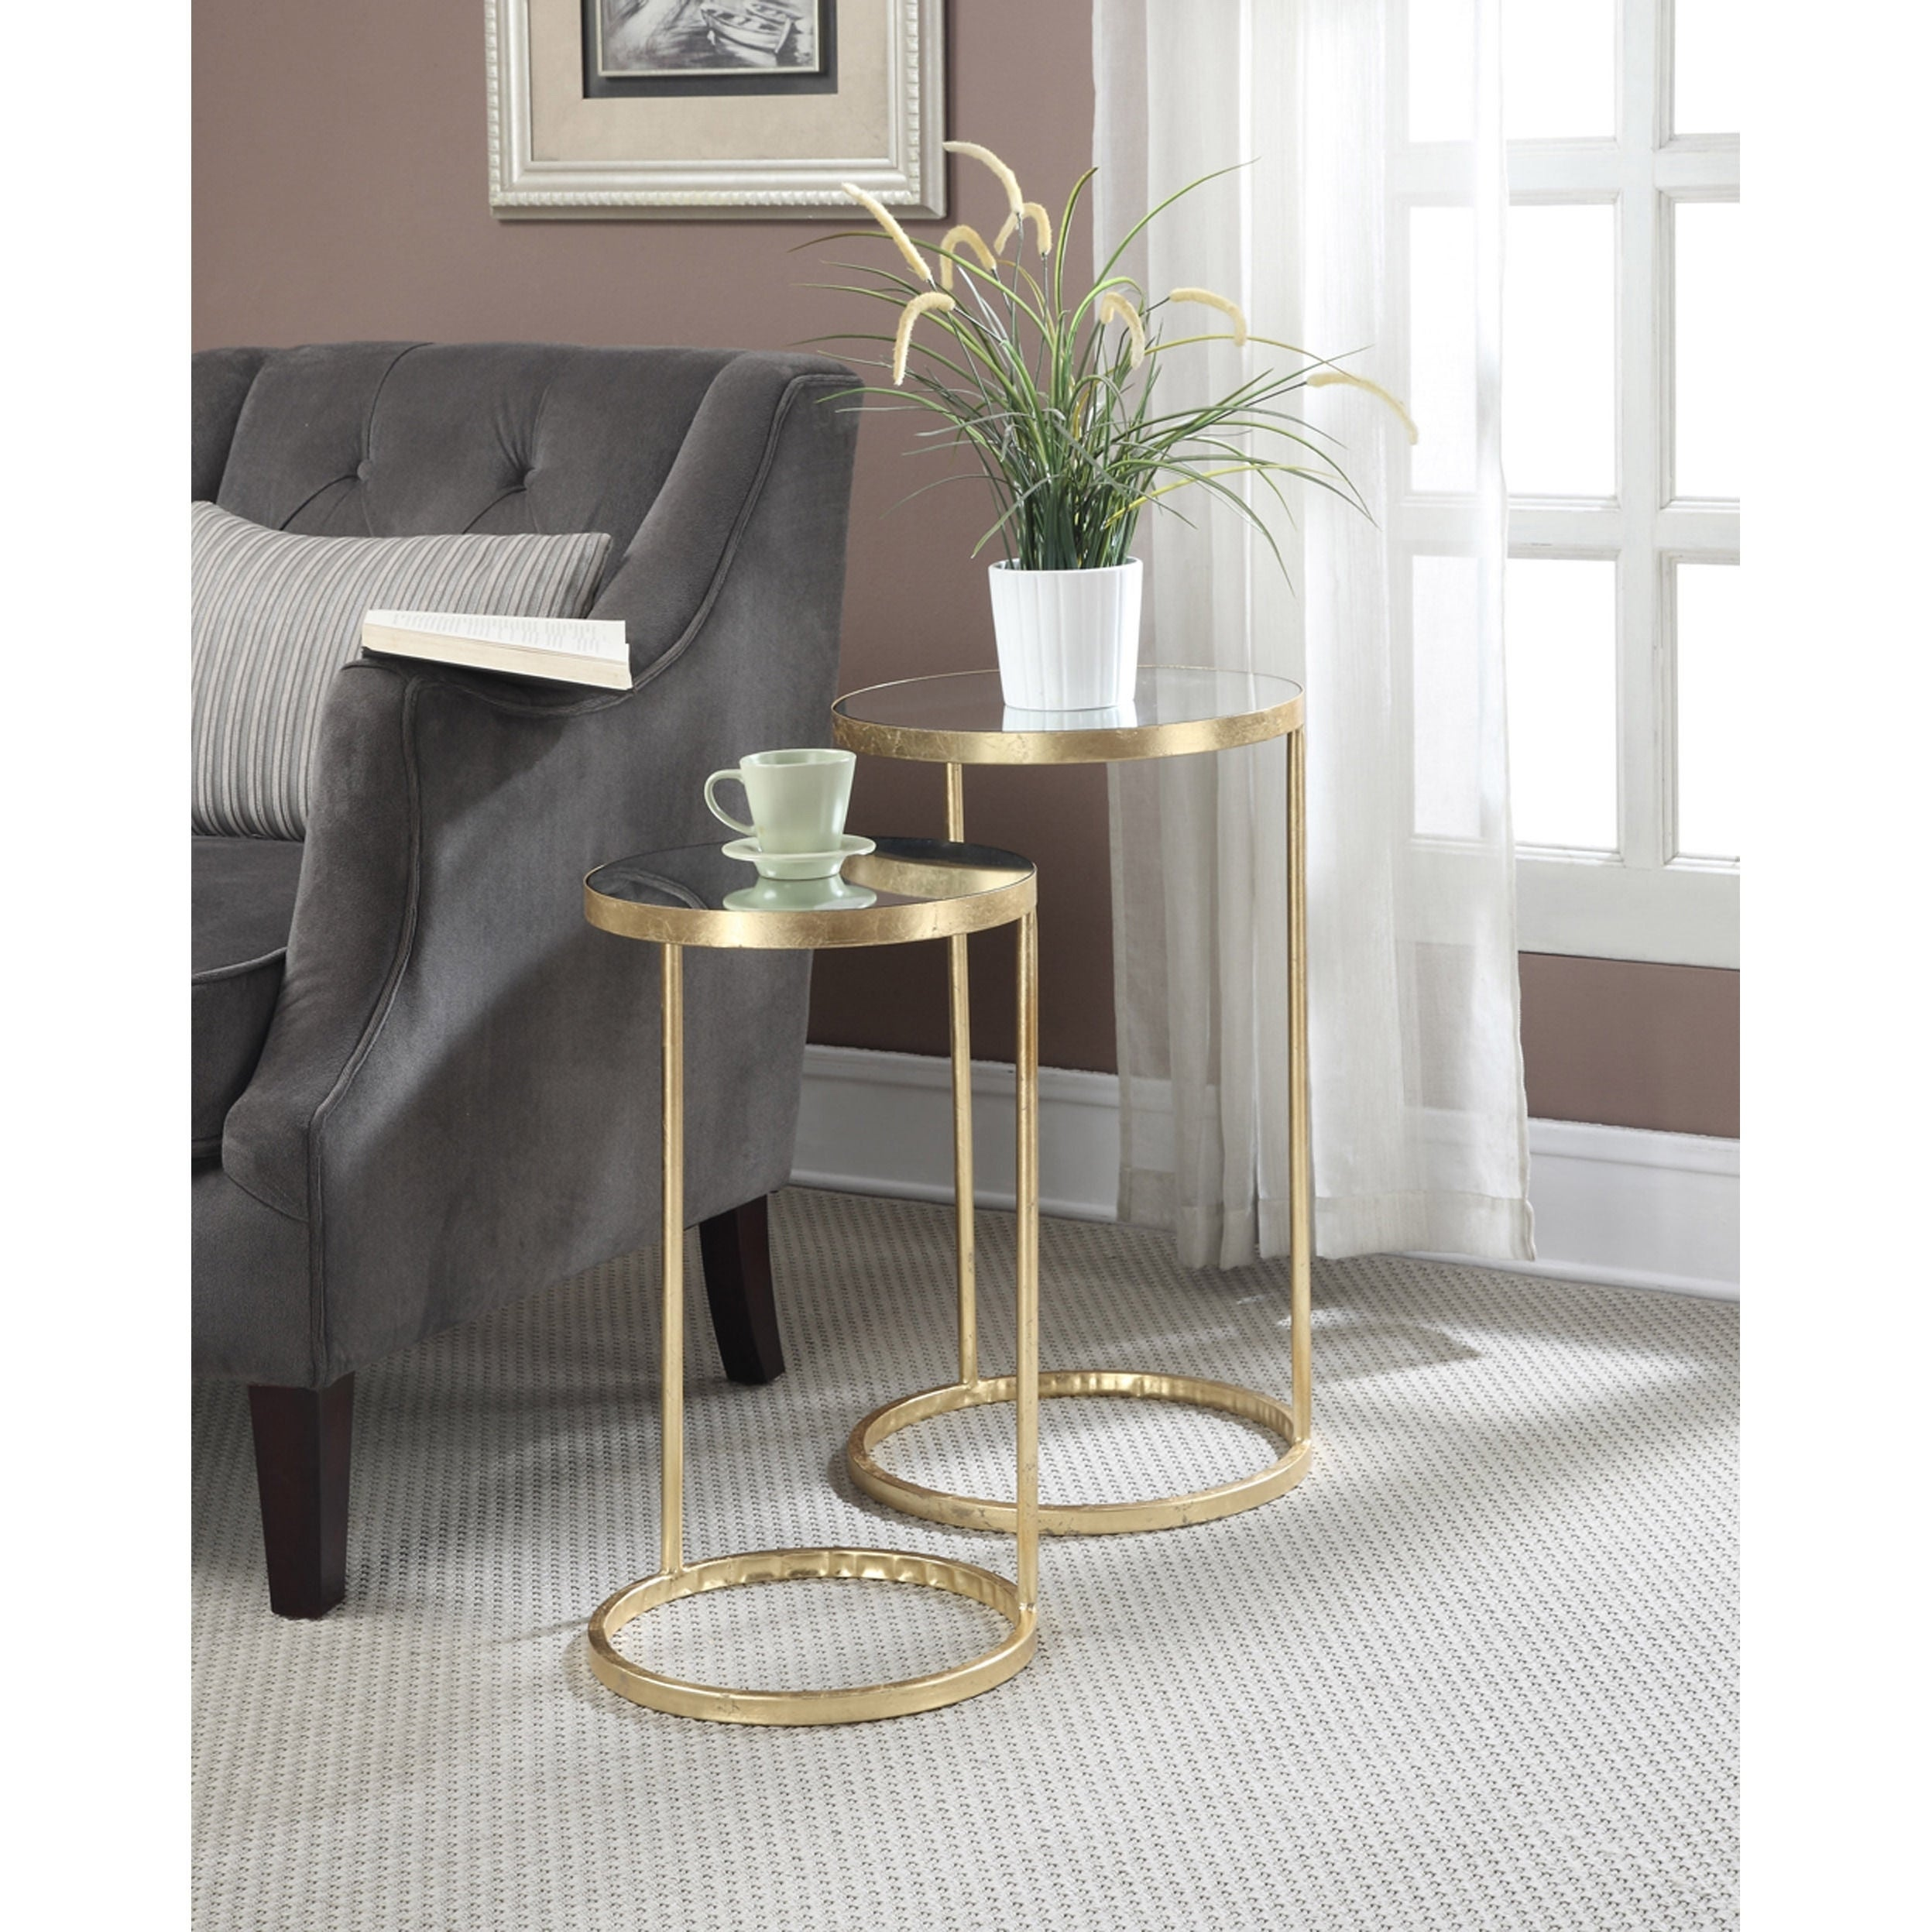 Gold Outdoor Coffee Table: Shop Convenience Concepts Gold Coast Round Nesting Mirror